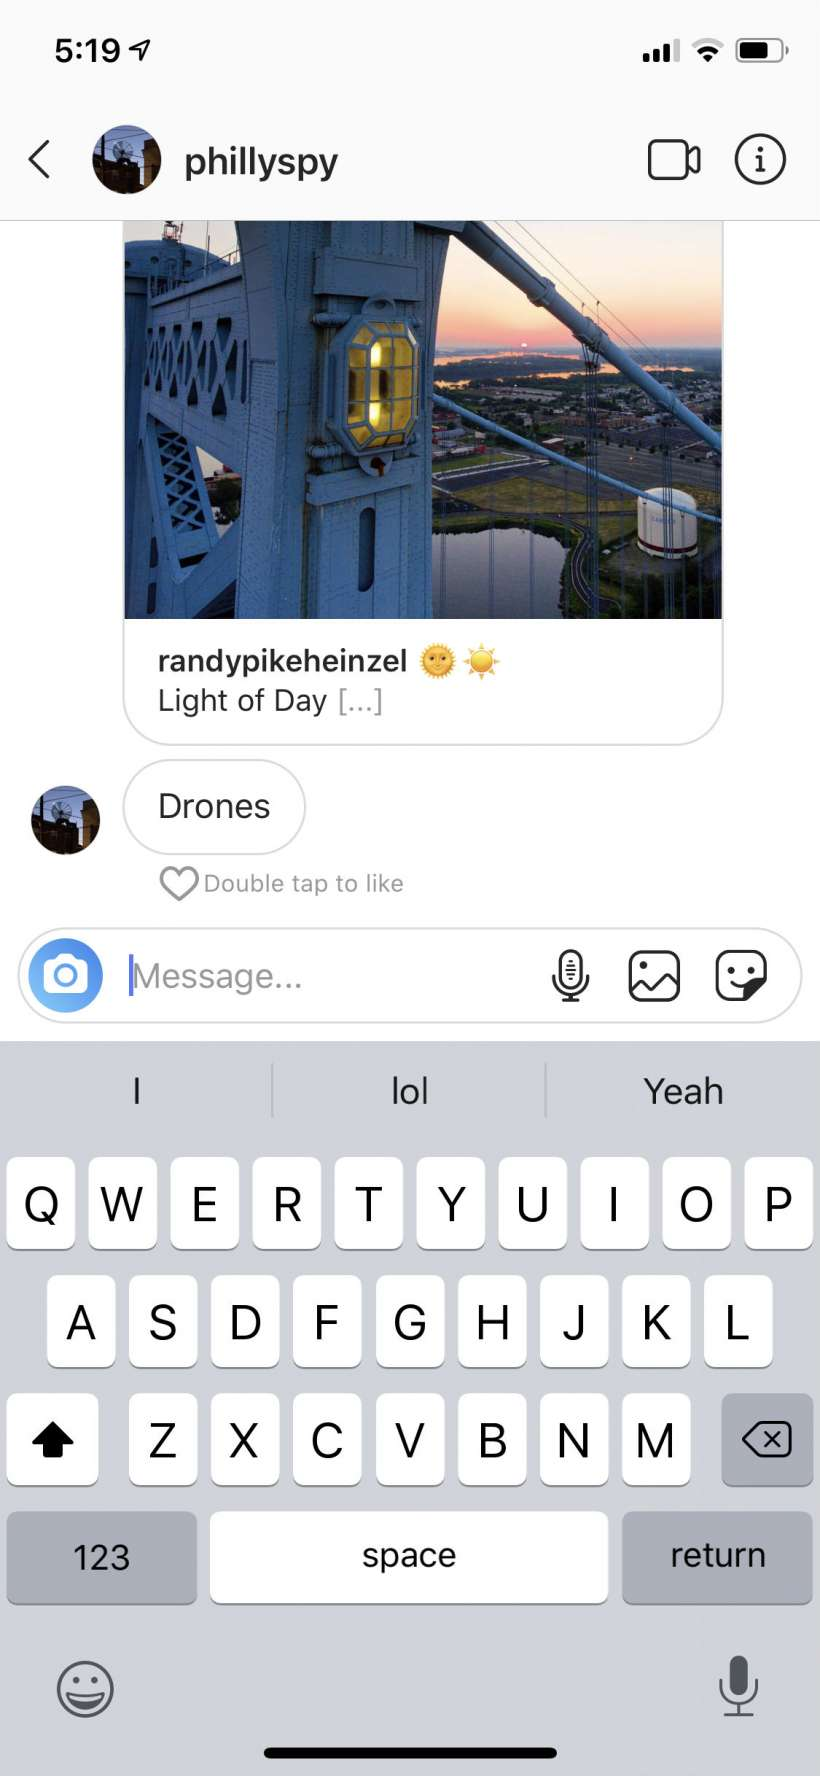 How to unsend messages on Instagram before they're seen